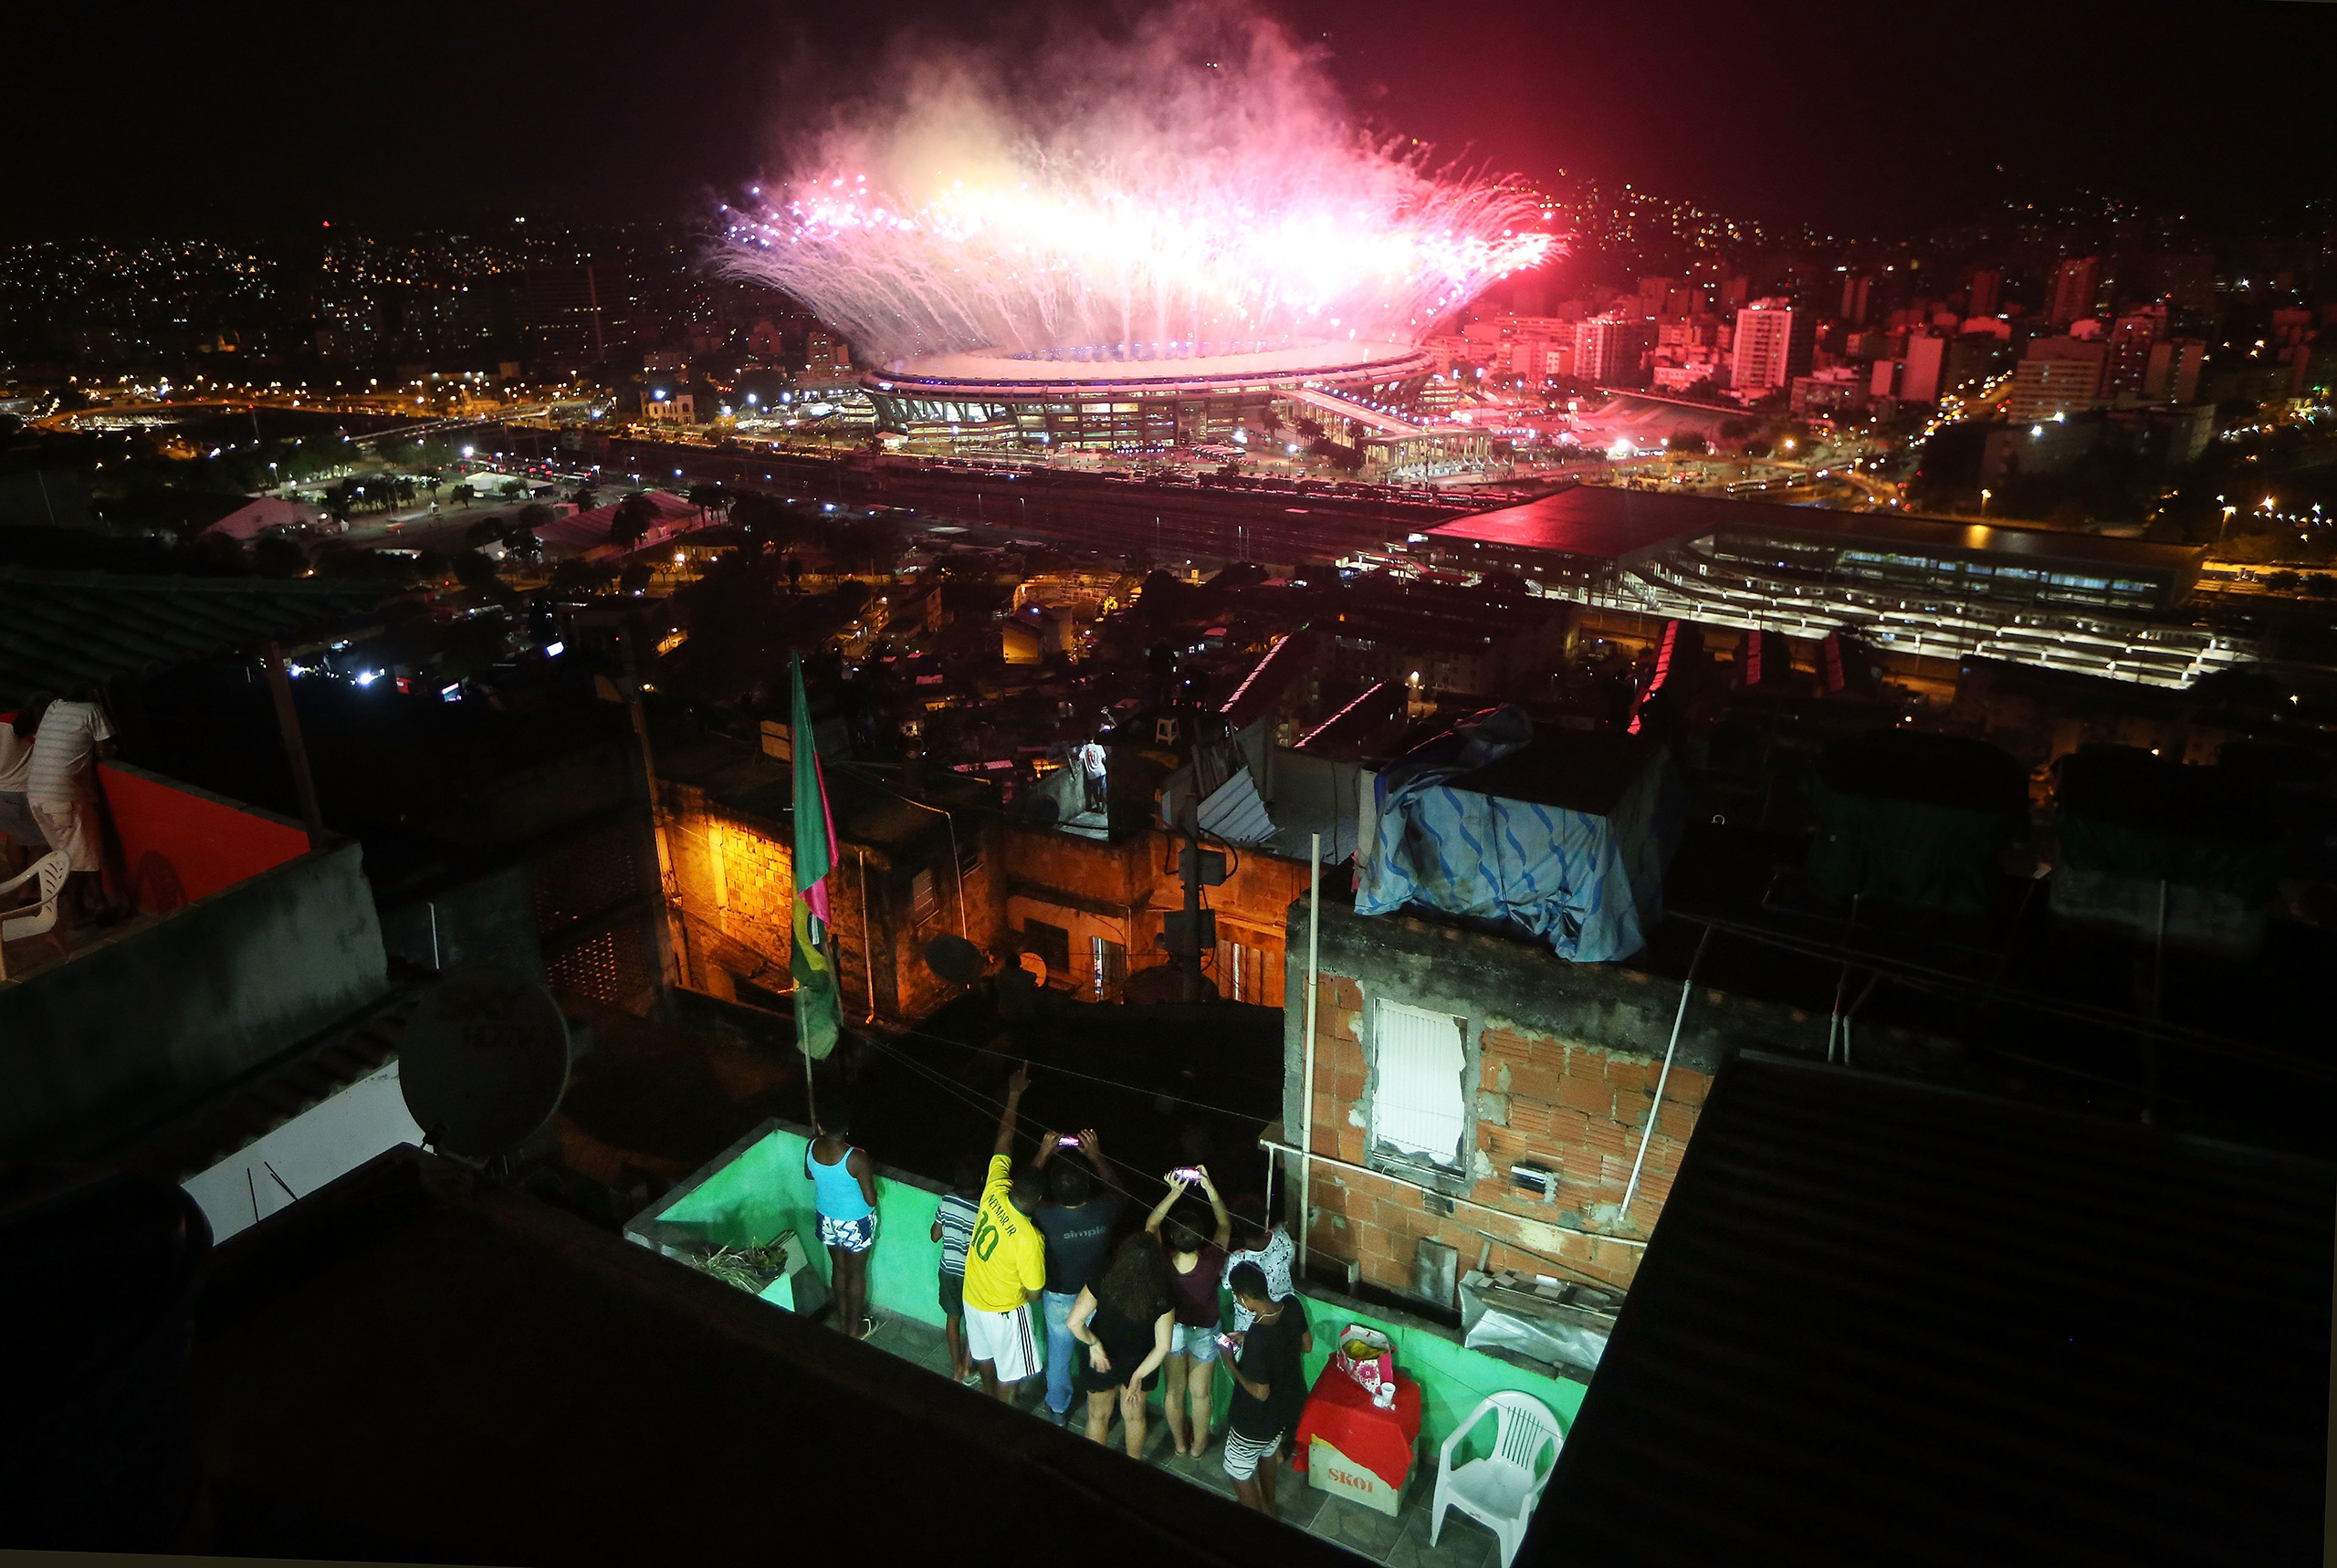 Fireworks explode over Maracana stadium with the Mangueira 'favela' community in the foreground during opening ceremonies for the Rio 2016 Olympic Games on Aug. 5, 2016.